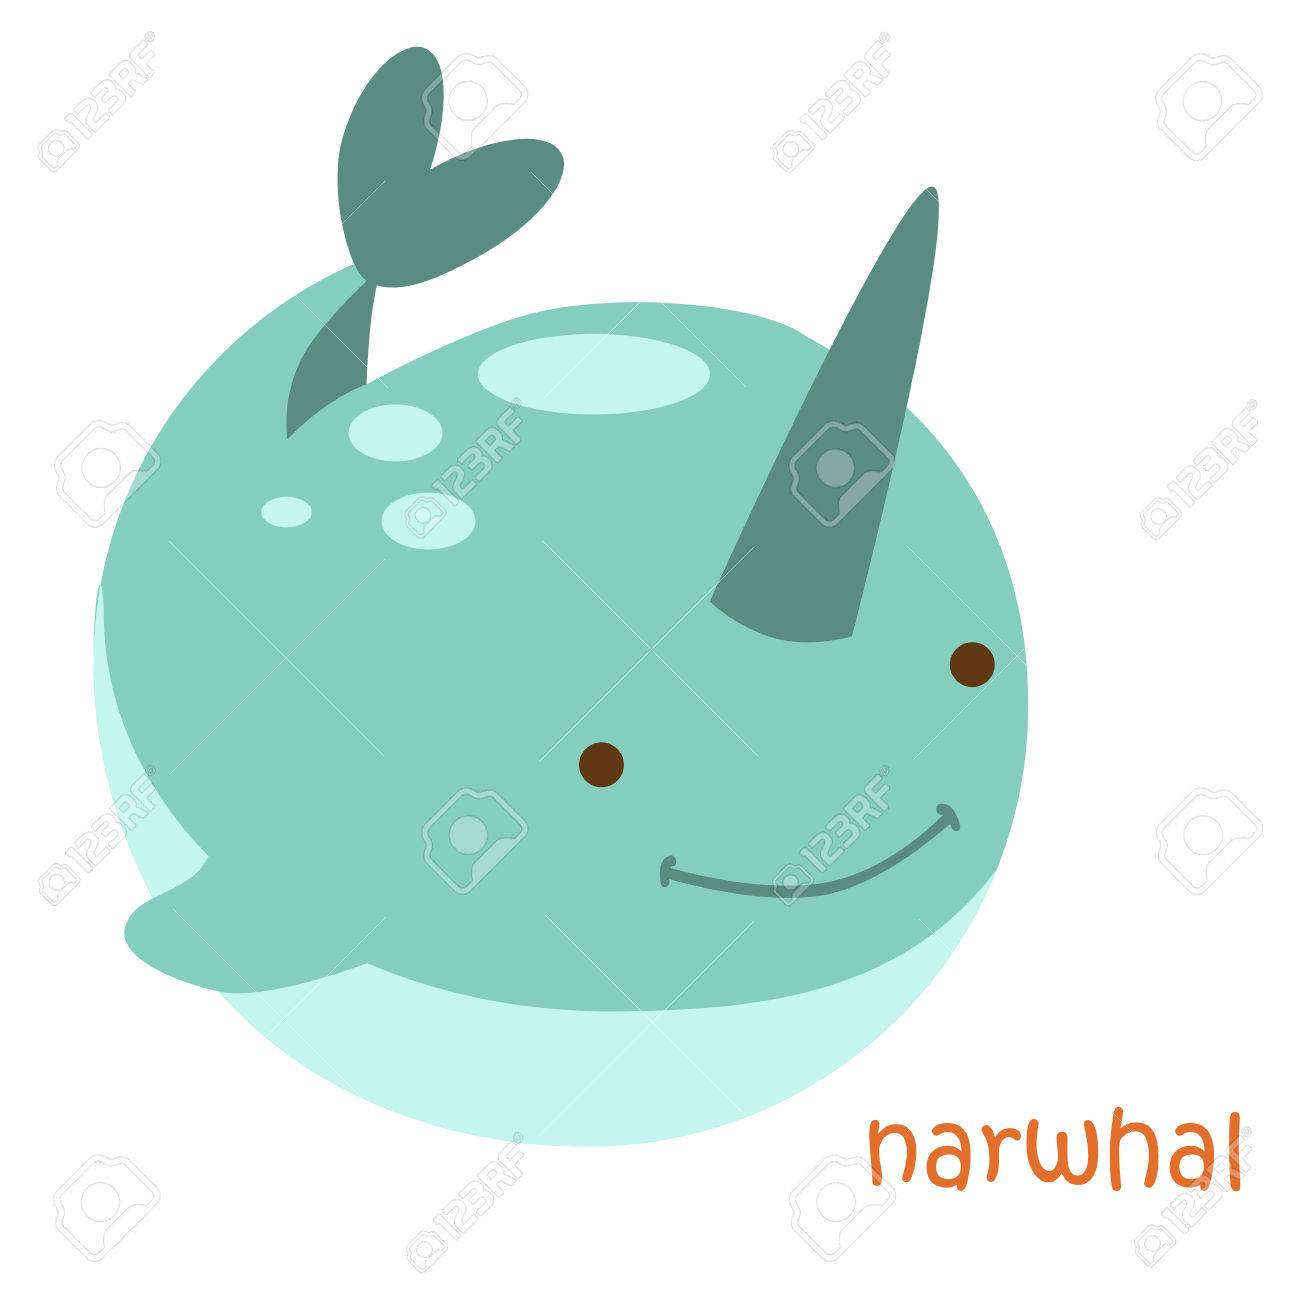 1300x1300 Narwhal Isolated. Drawing Narwhal For A Child Royalty Free